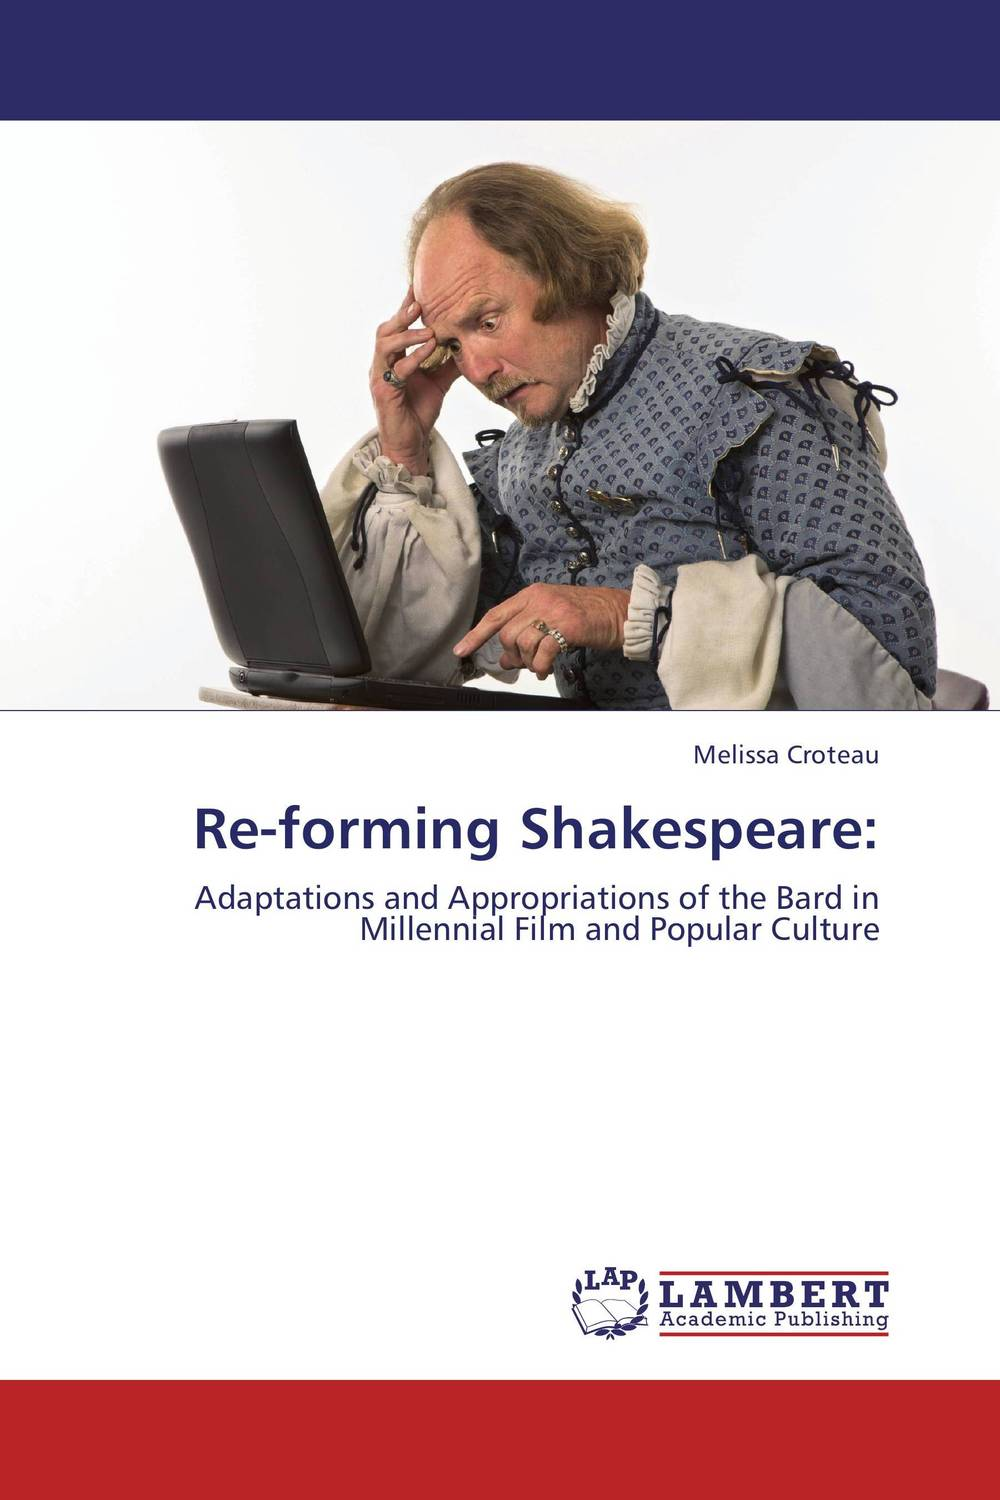 Re-forming Shakespeare: shakespeare w the merchant of venice книга для чтения